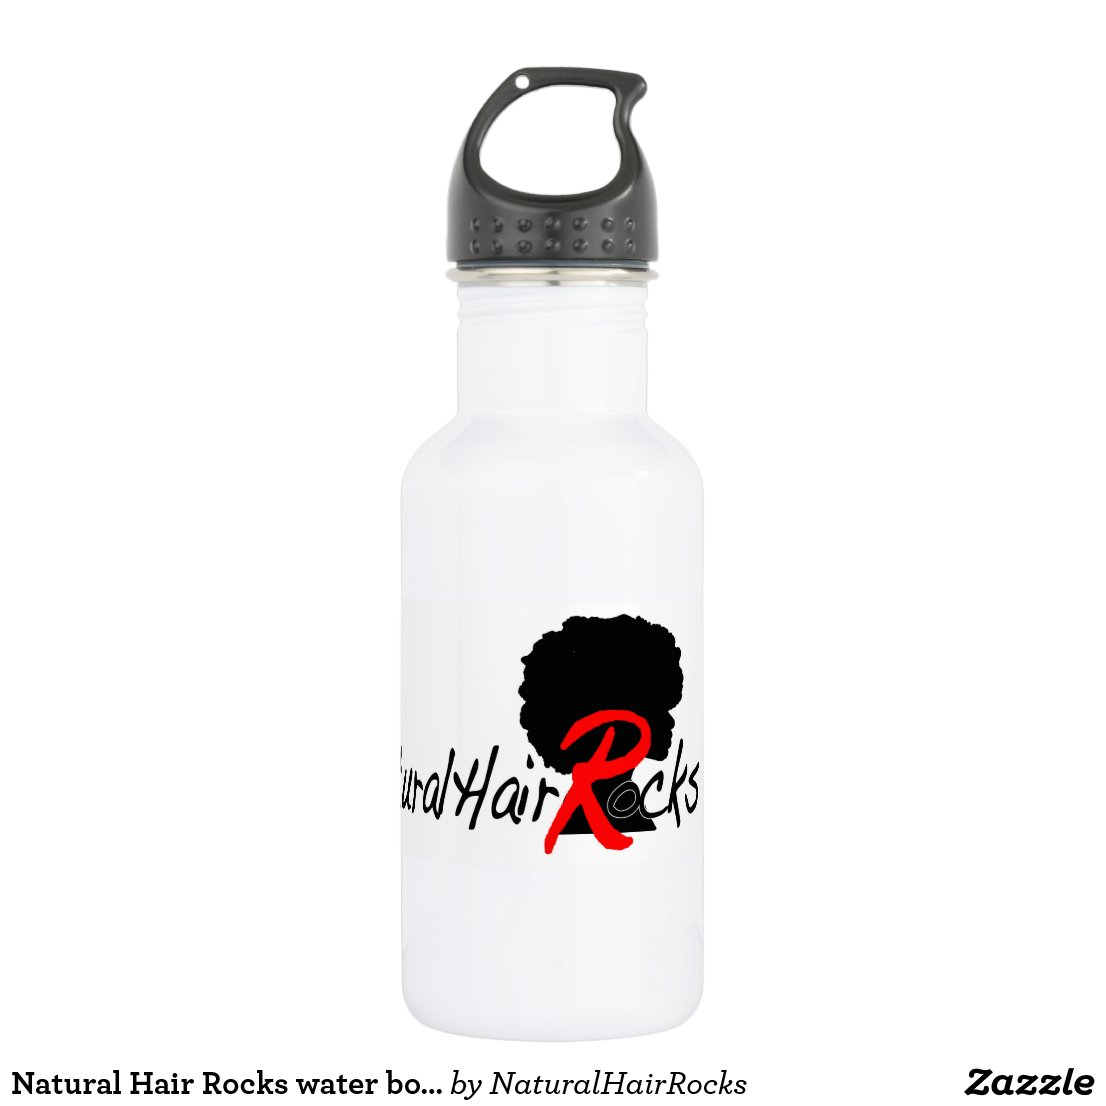 Natural Hair Rocks water bottle